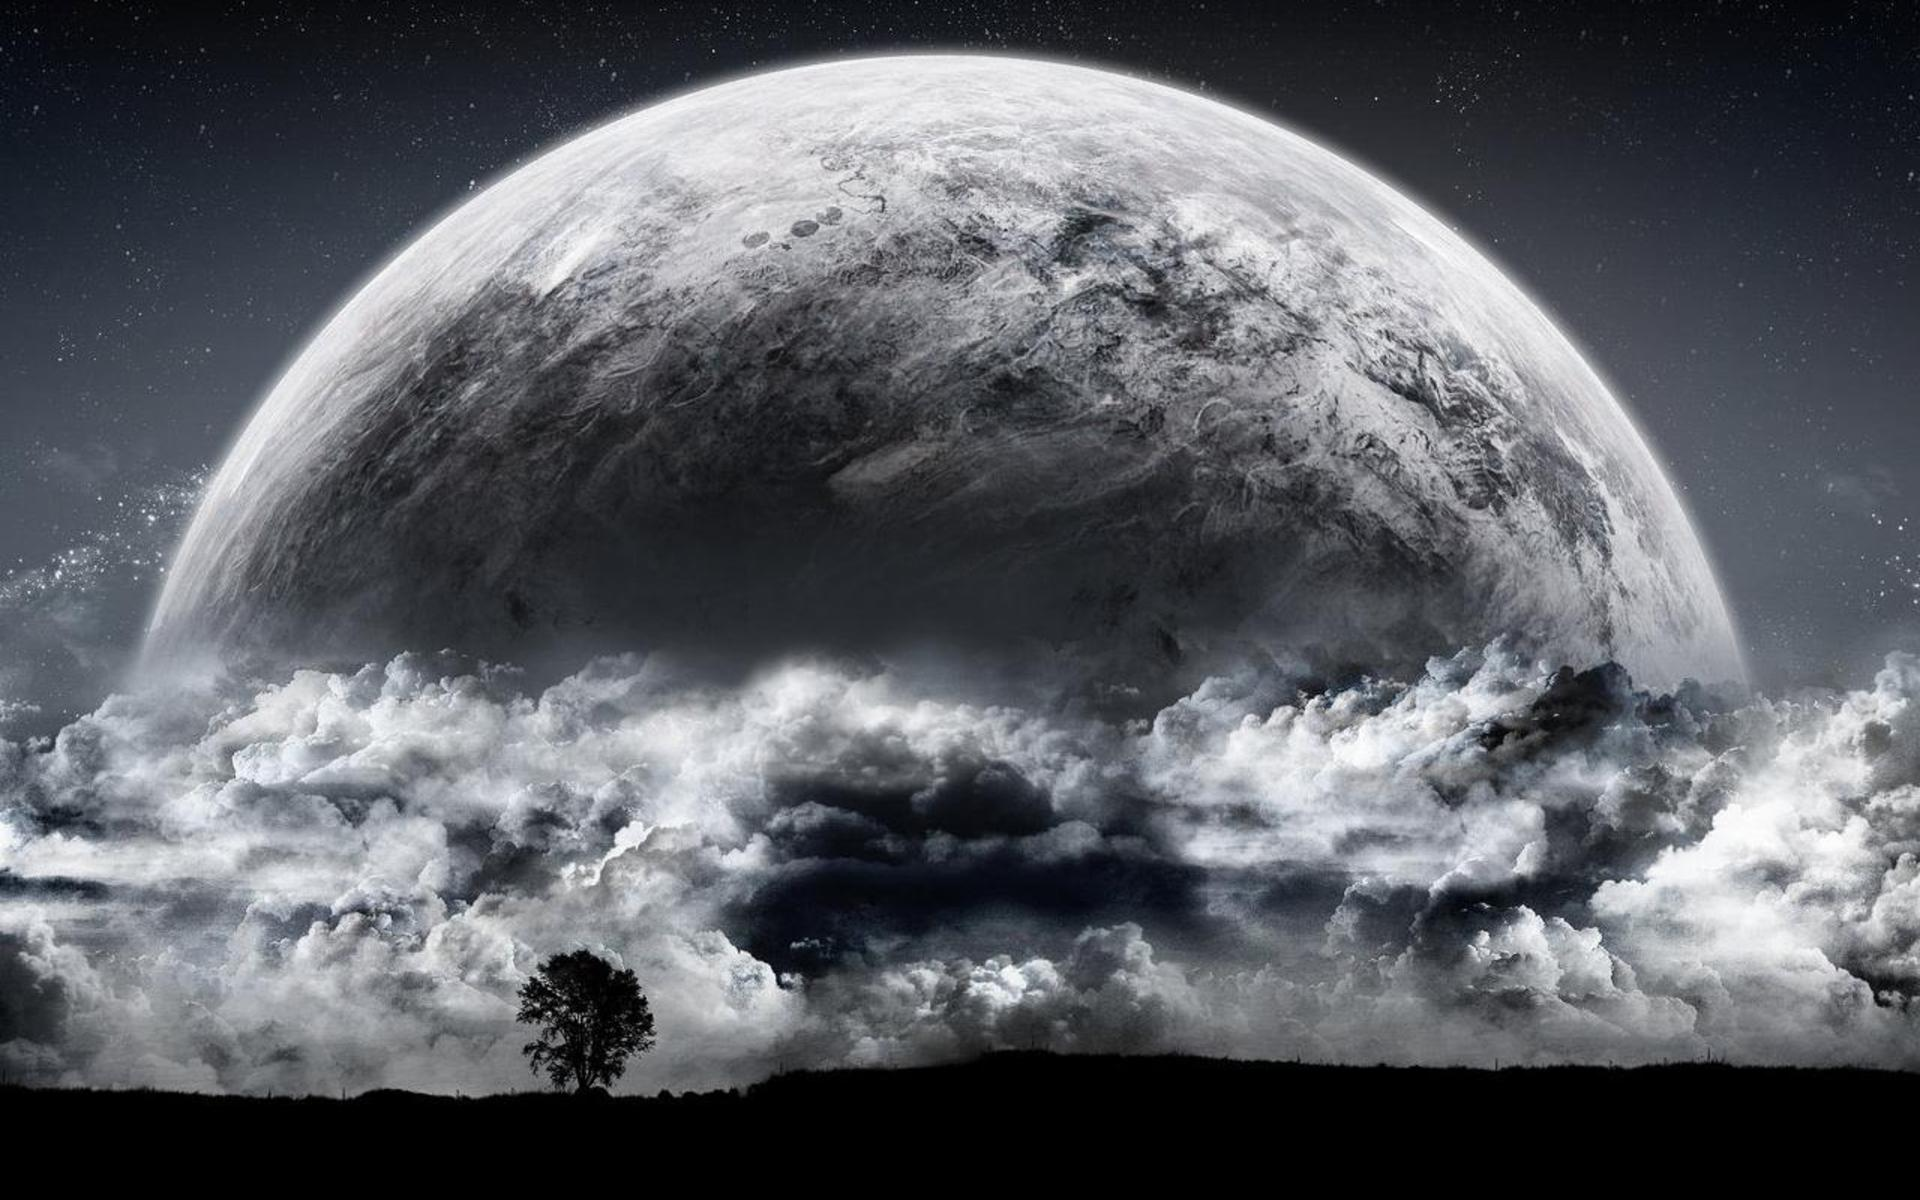 Moon Wallpaper 10 1920x1200